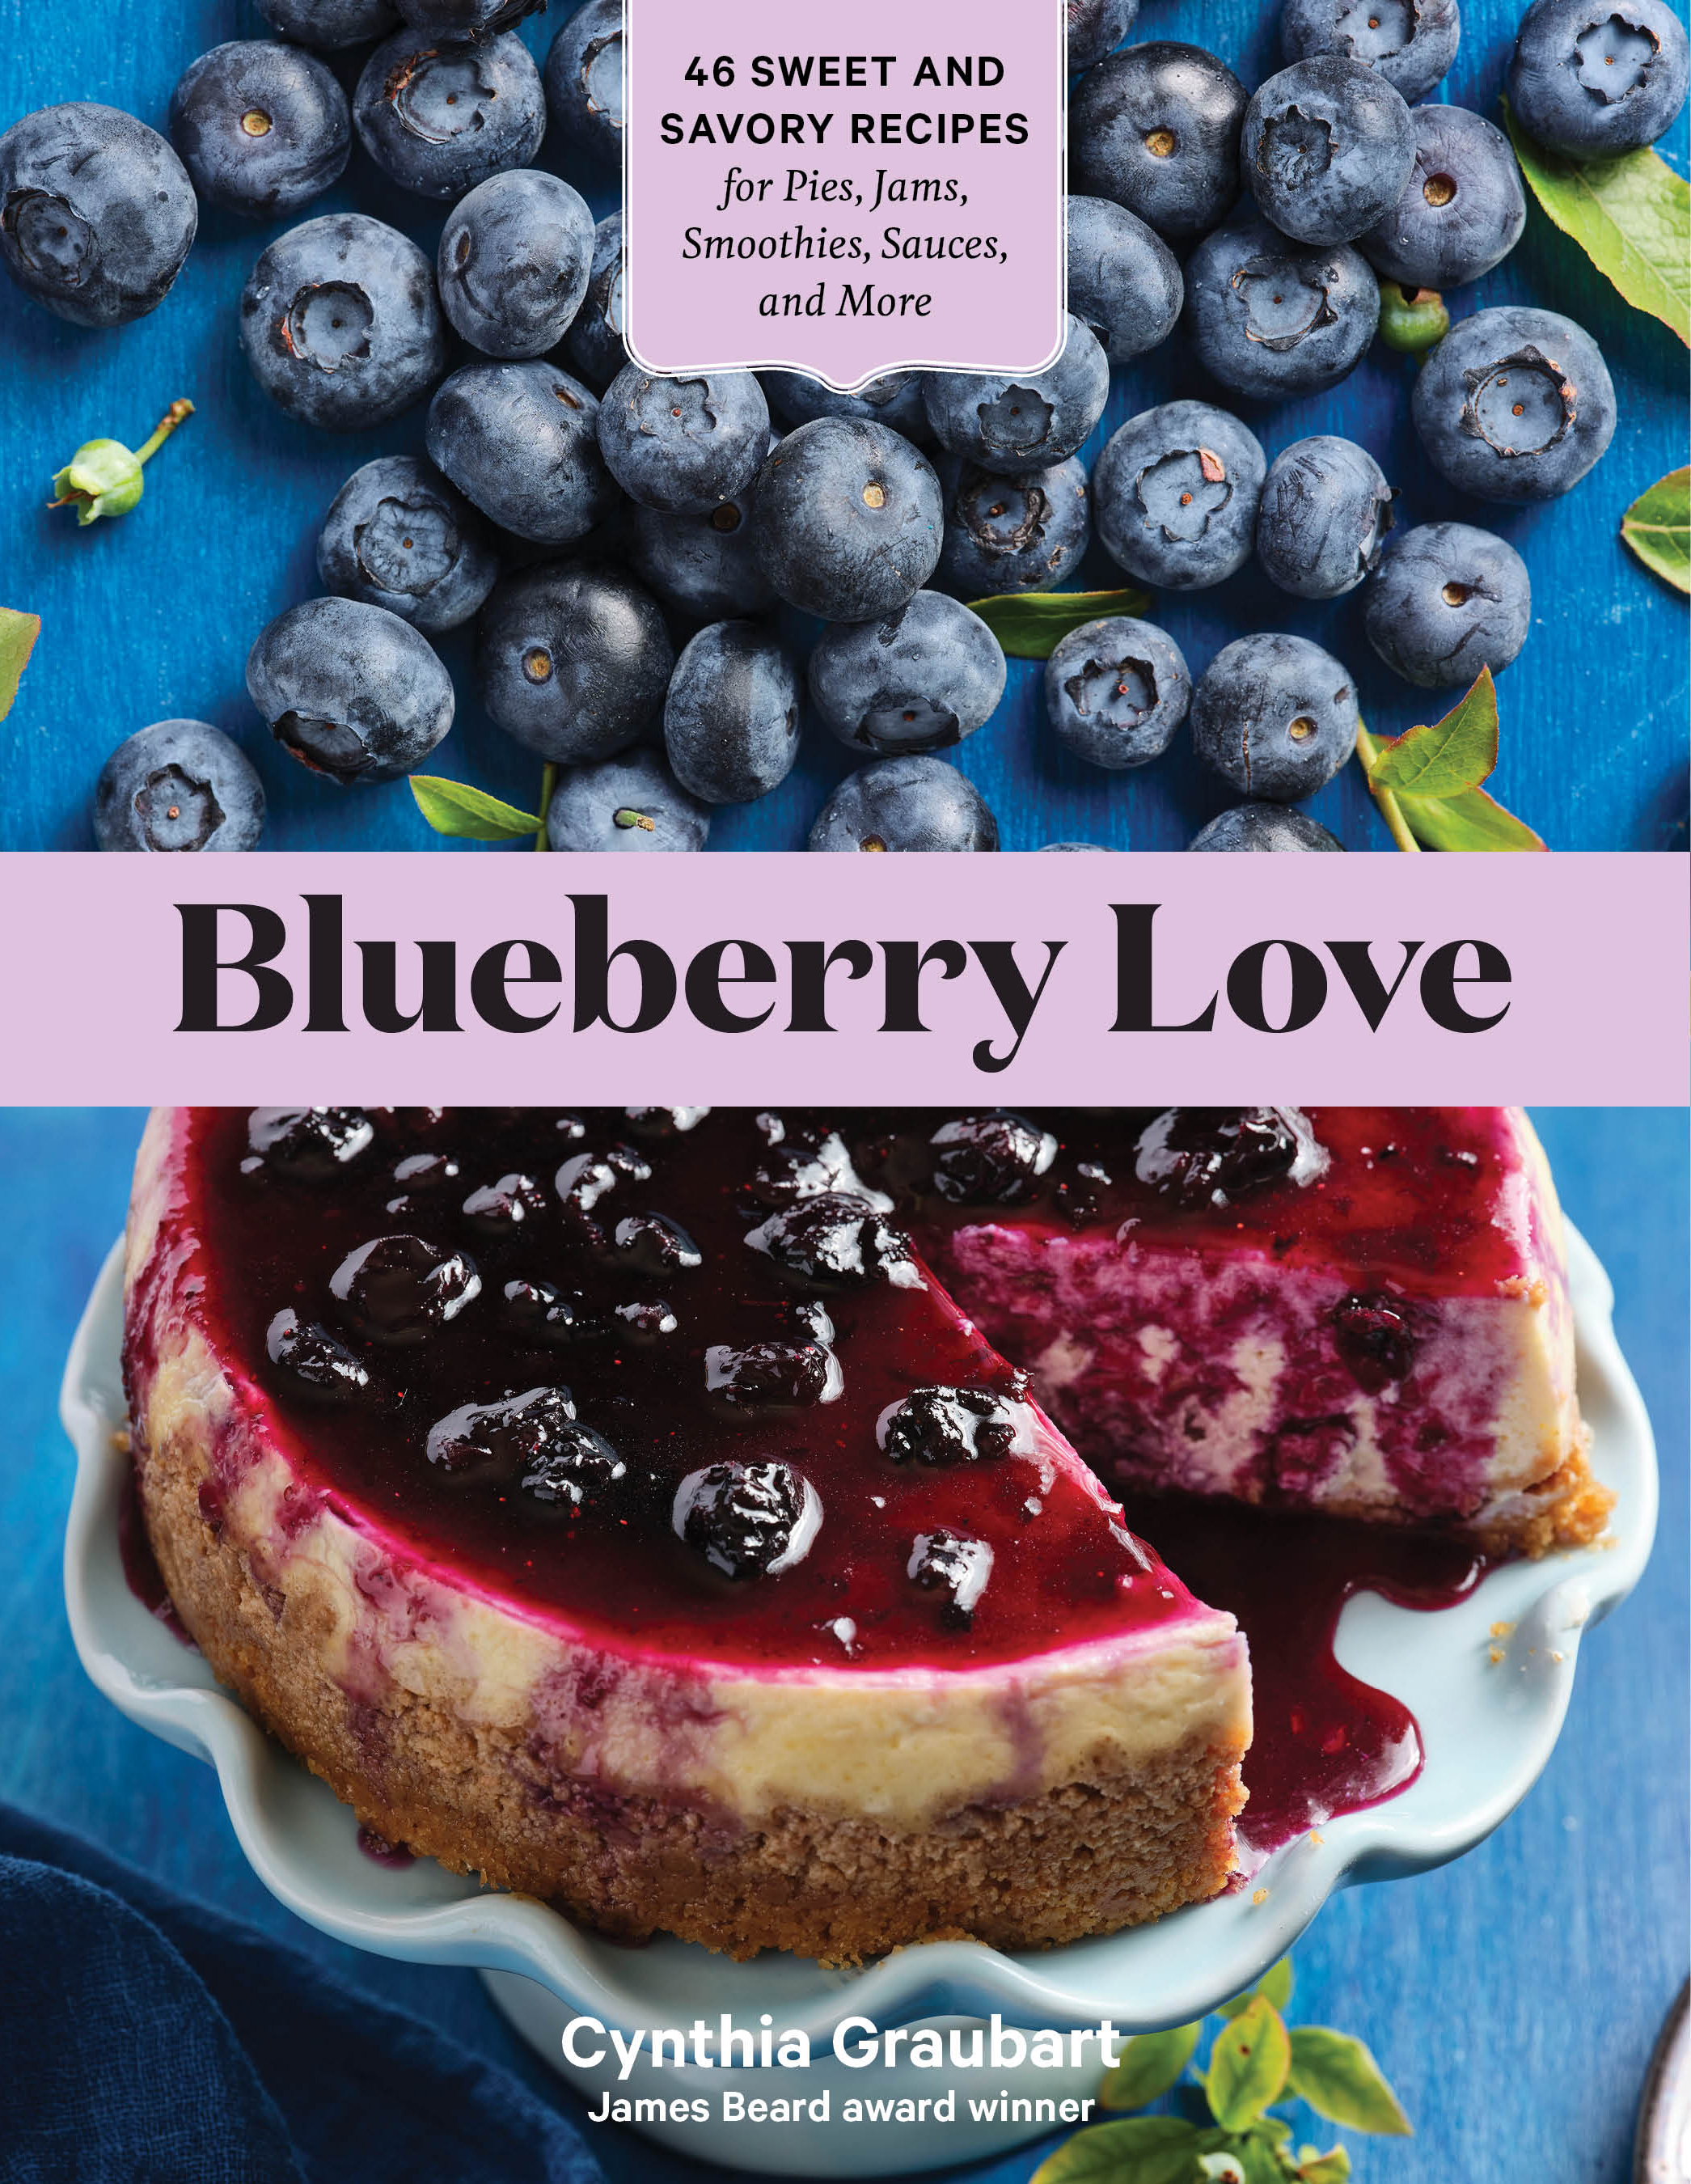 Blueberry Love 46 Sweet and Savory Recipes for Pies, Jams, Smoothies, Sauces, and More - Cynthia Graubart